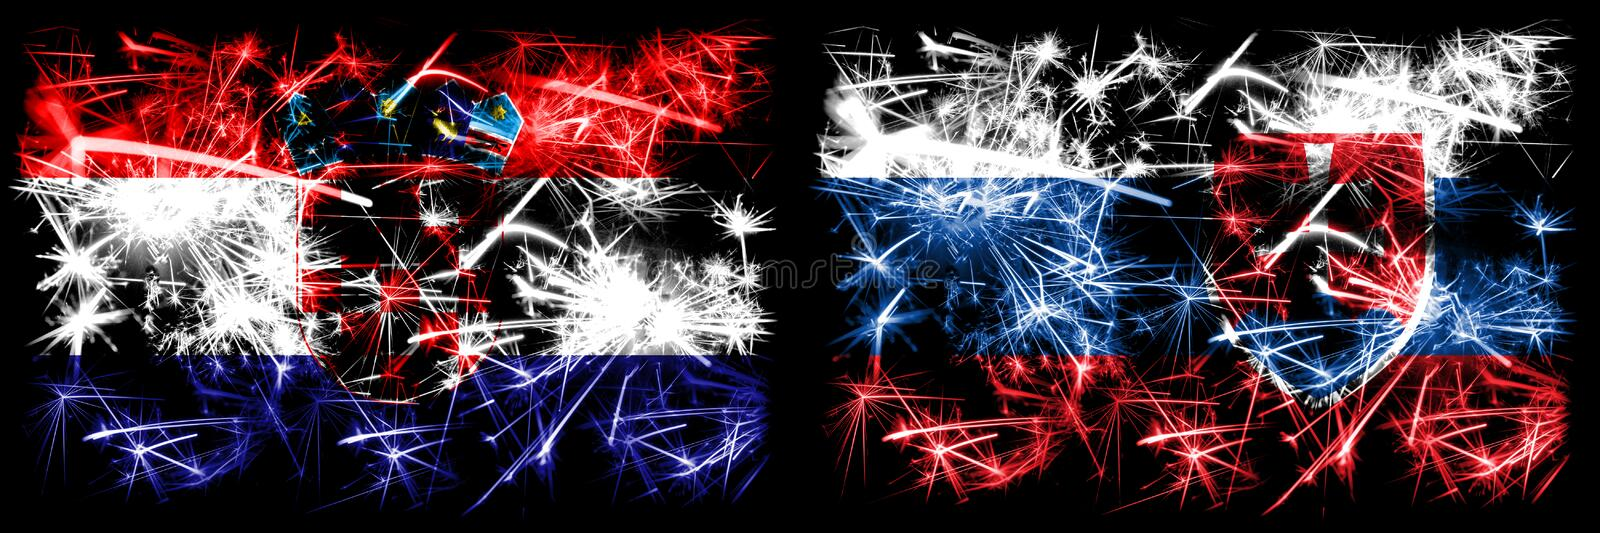 Croatia, Croatian, Slovakia, Slovakian, flip sparkling fireworks concept and idea flags royalty free illustration